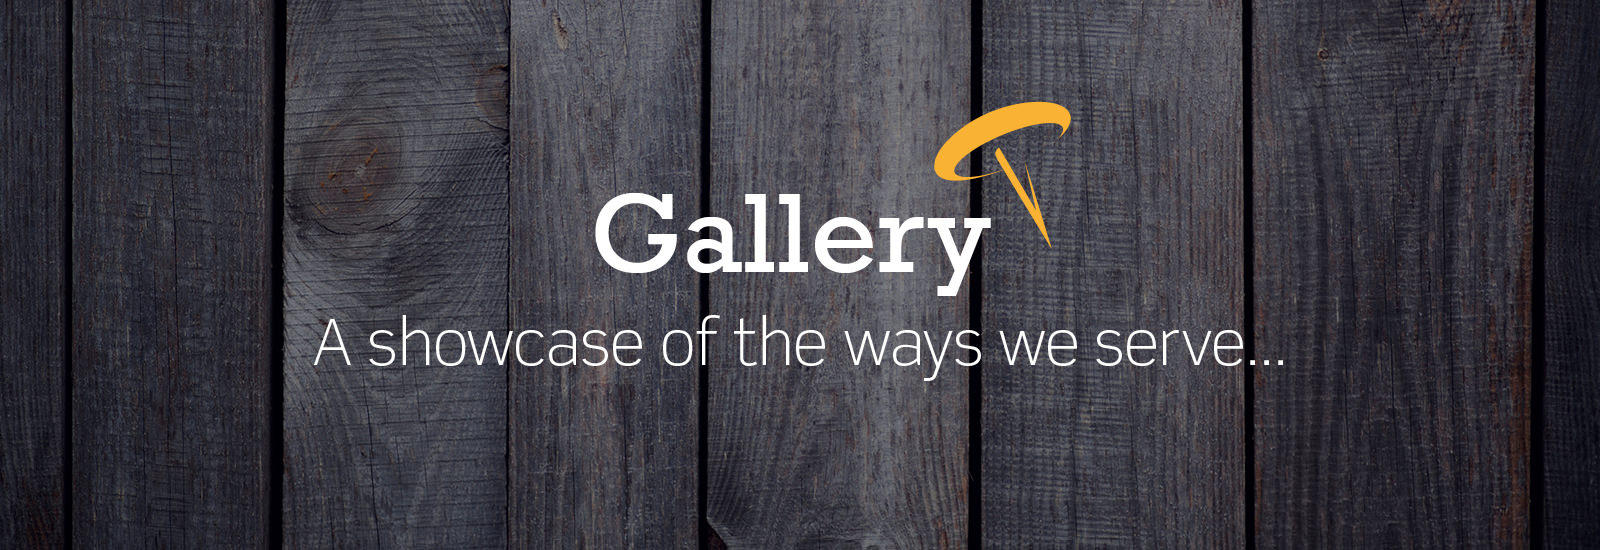 Gallery - A showcase of the ways we serve...